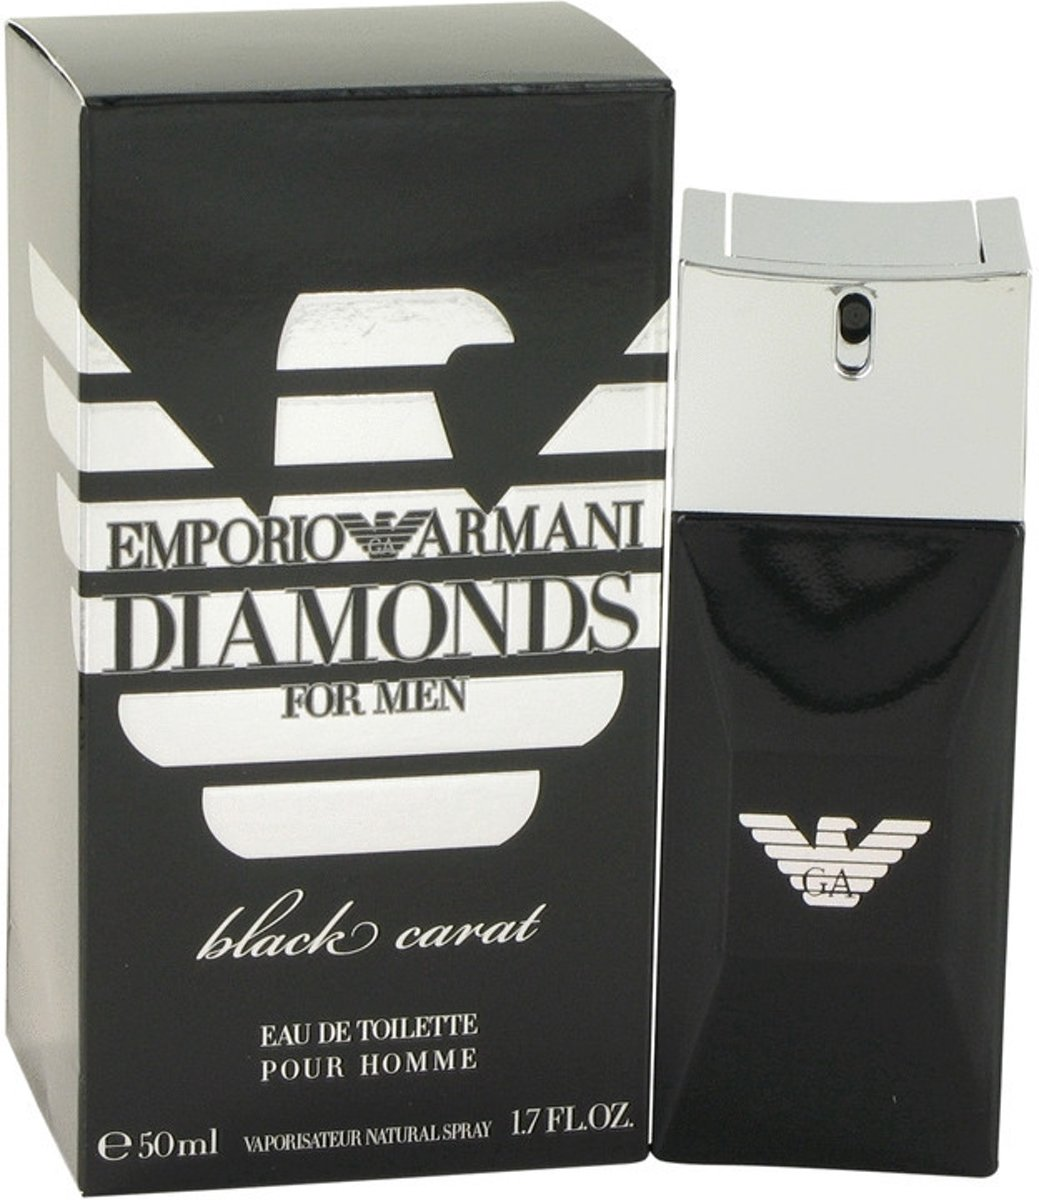 Emporio Armani Diamond Black carat - EDT 50ml -